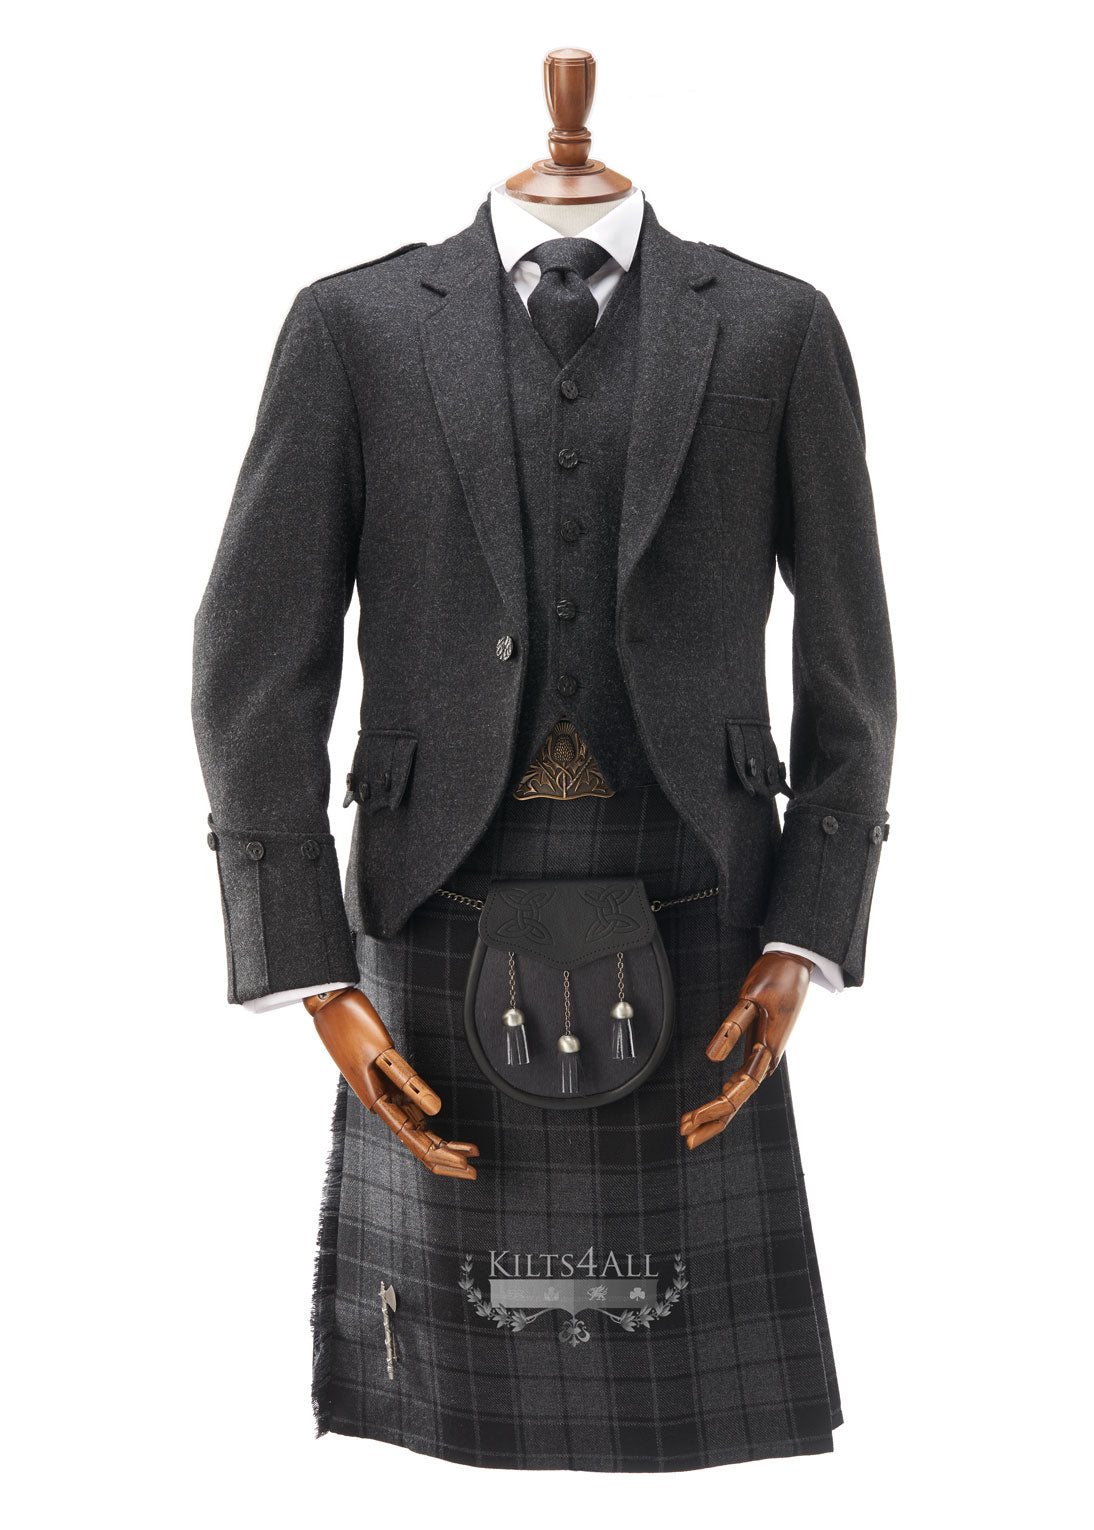 Mens Lightweight Charcoal Tweed Argyll Jacket & Waistcoat to Buy